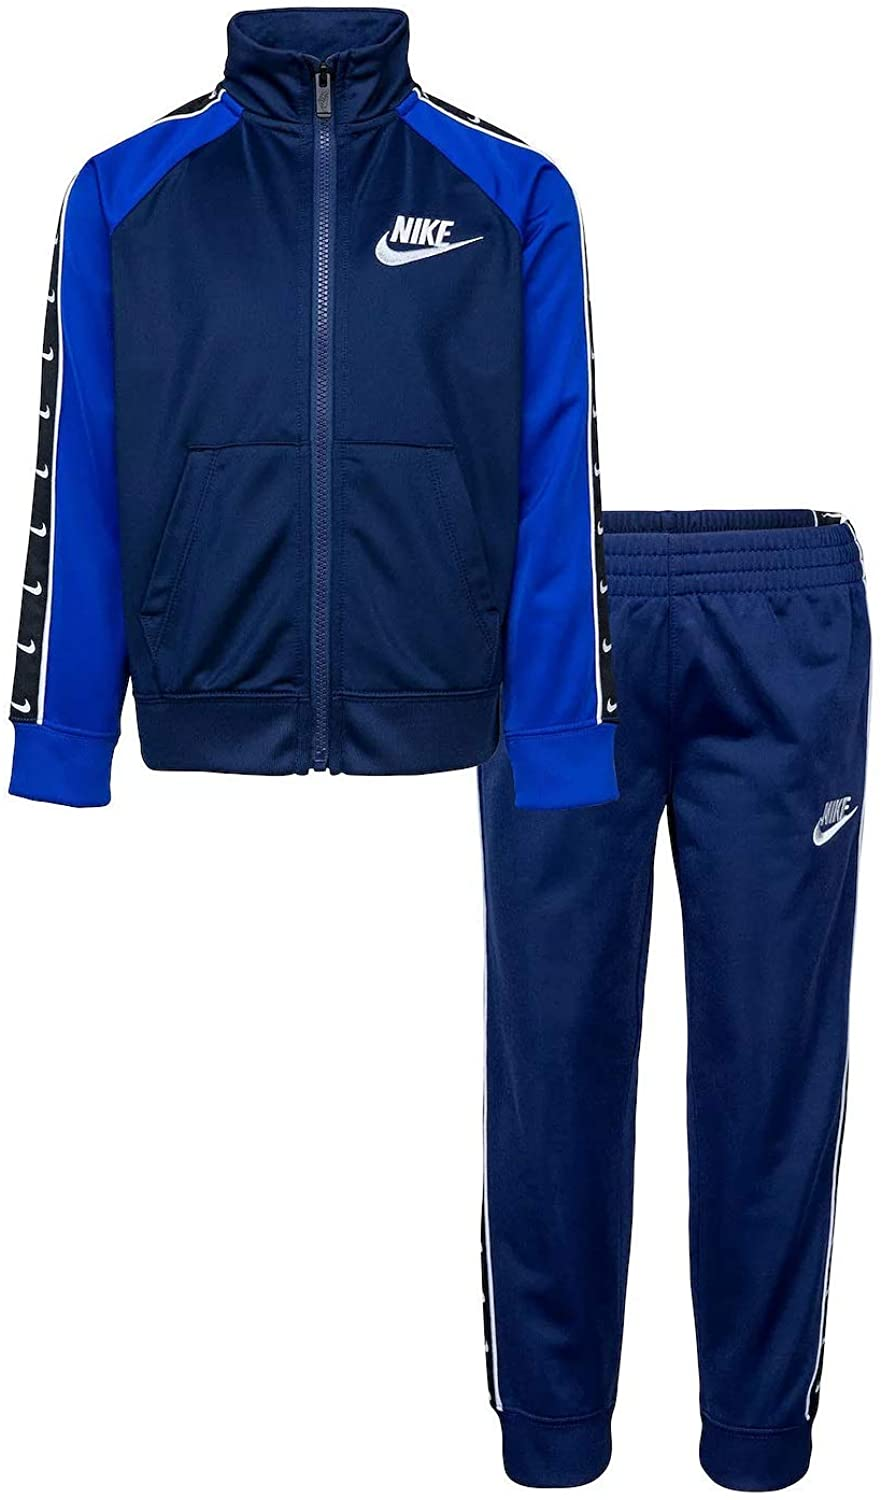 Nike Boys' 2-Piece Max 43% OFF Tricot Pants Set Trust Tracksuit Outfit